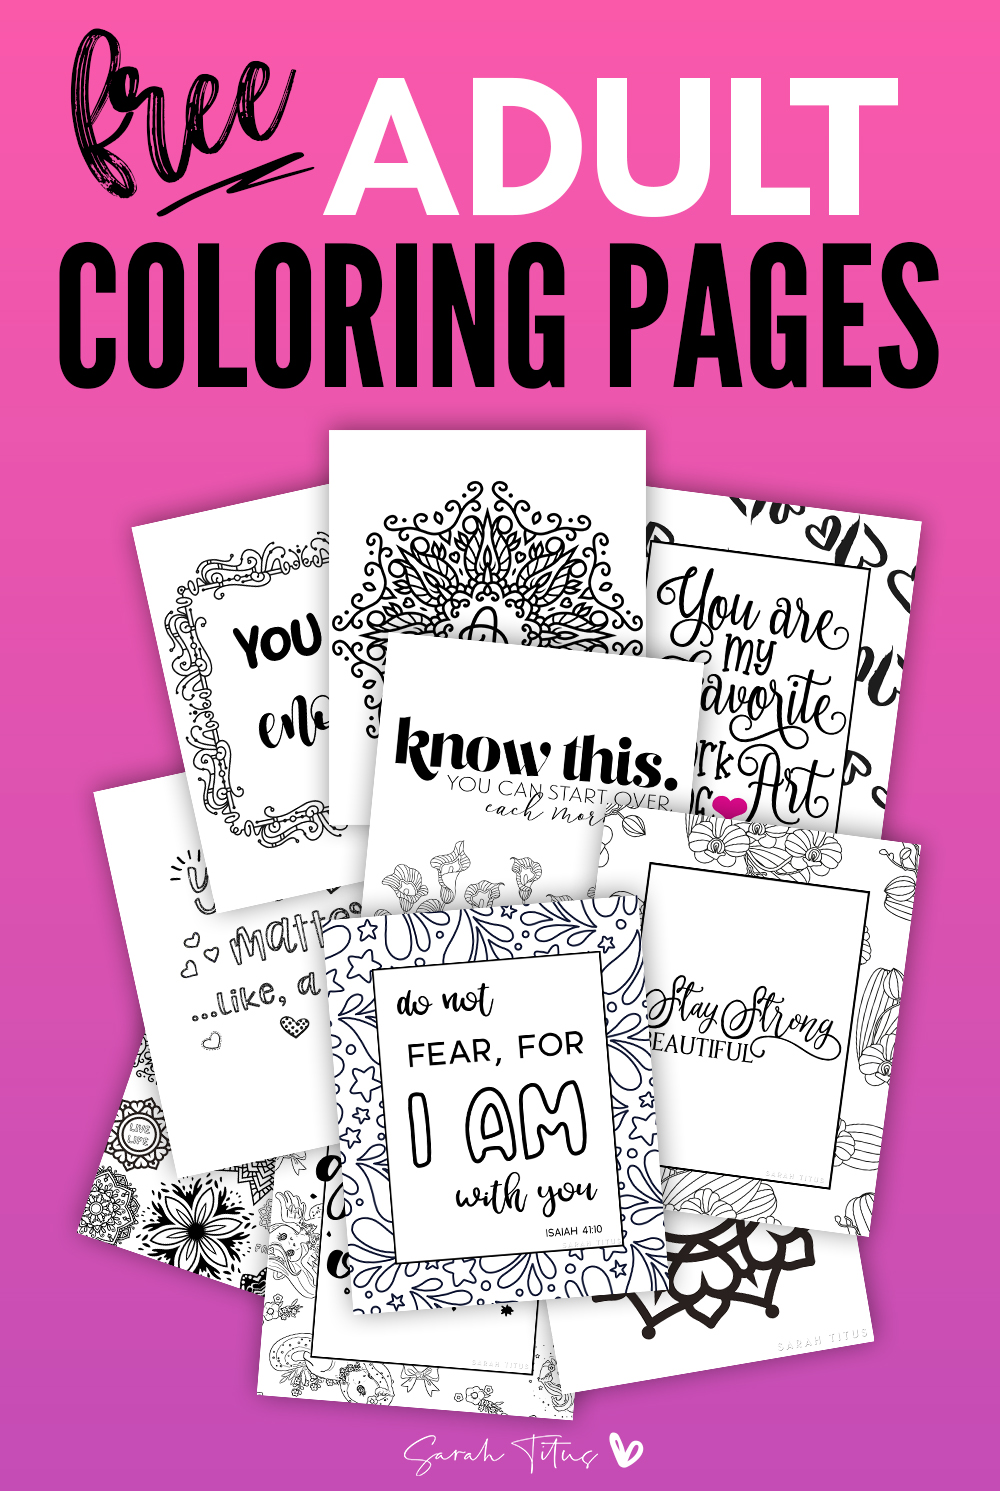 Grab these 30 free coloring pages for adults! Set back and relax and color one of these fun coloring sheets! #coloringpages #coloringsheets #coloring #adultcoloring